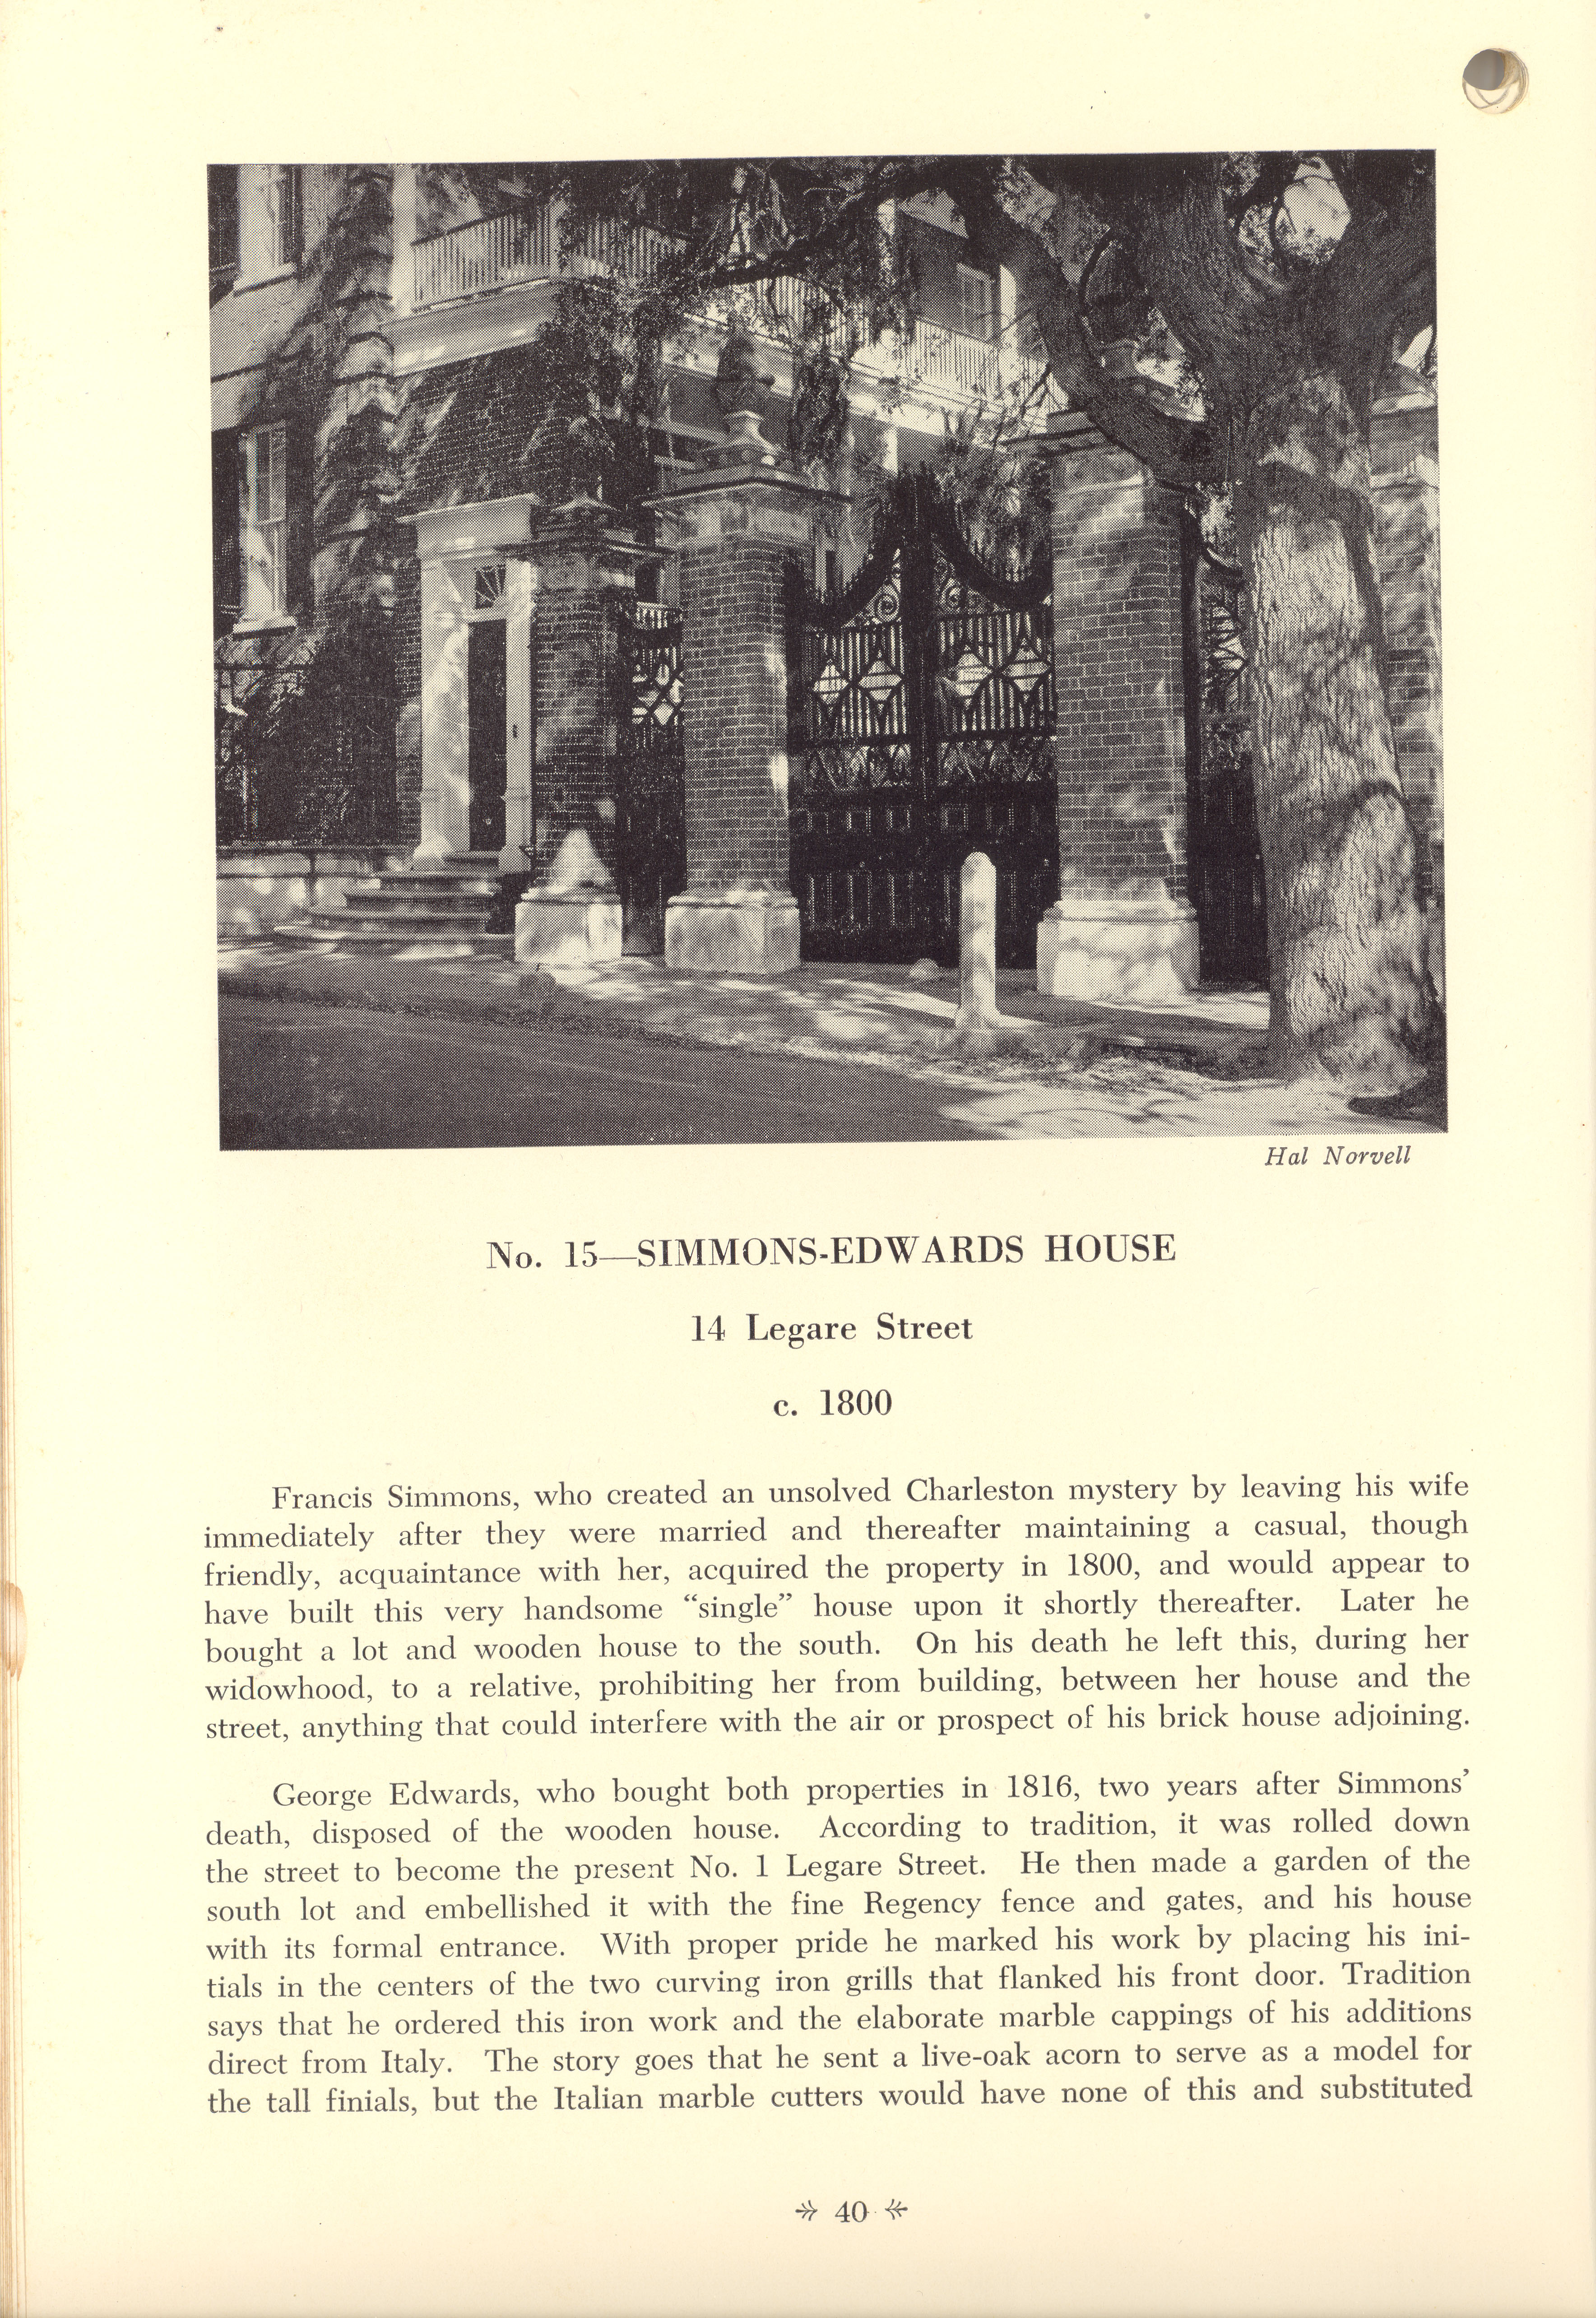 Page 40:  No. 15 - The Simmons-Edwards House, 14 Legare Street, c. 1800